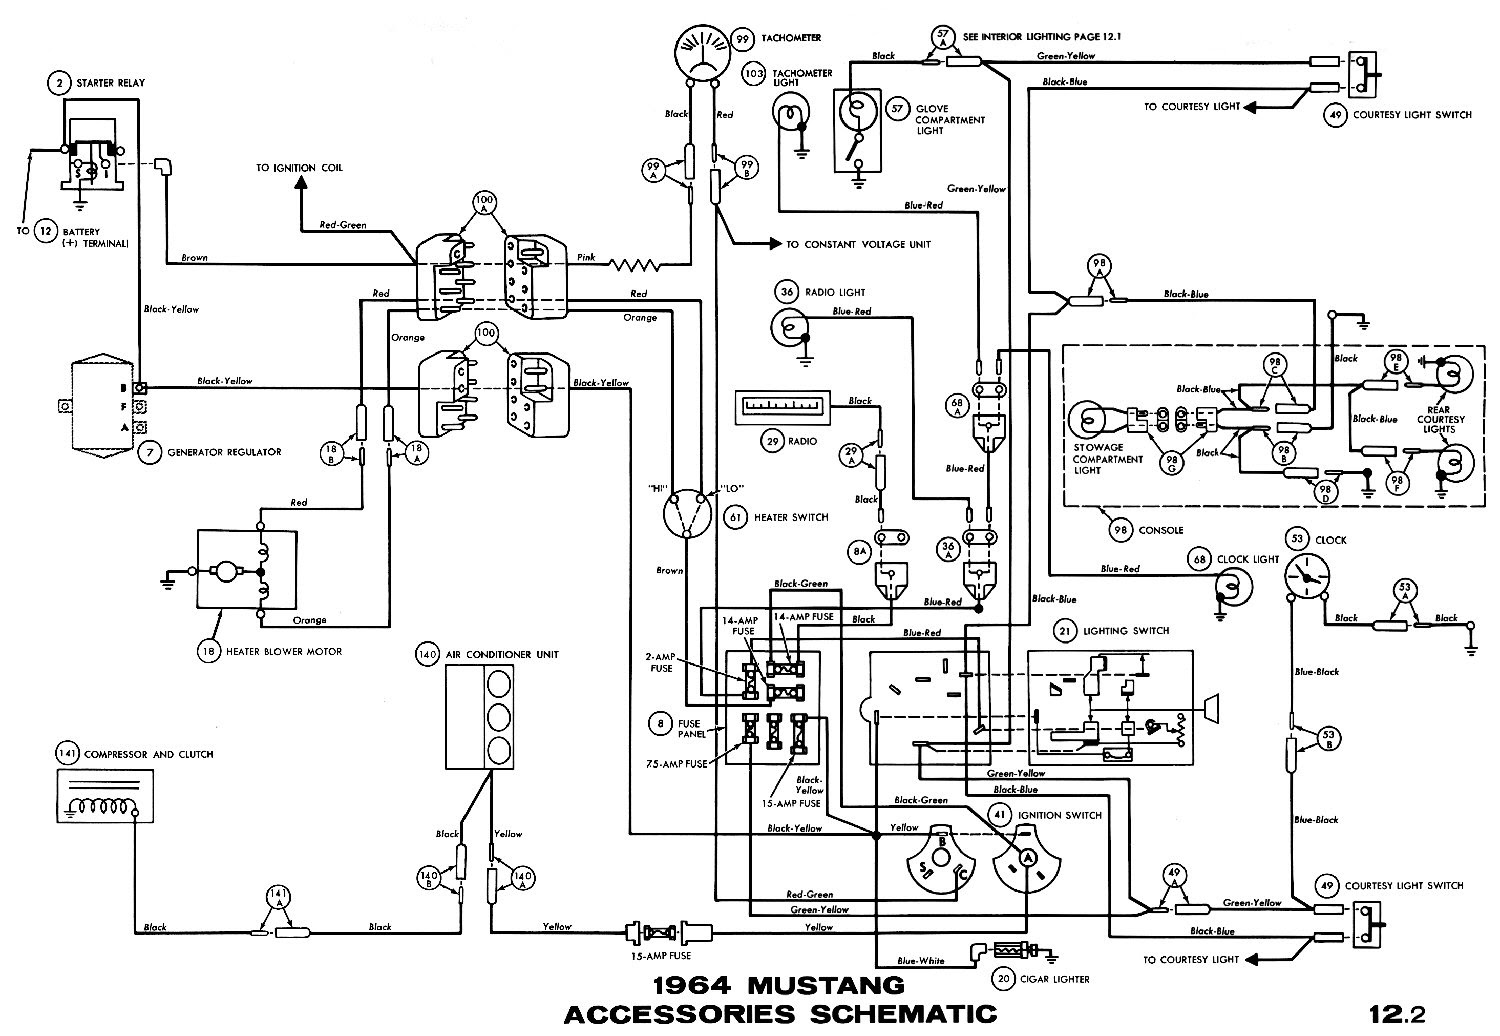 Mustang 1984 350 Engine Wire Diagram Wiring Diagram Character A Character A Lionsclubviterbo It